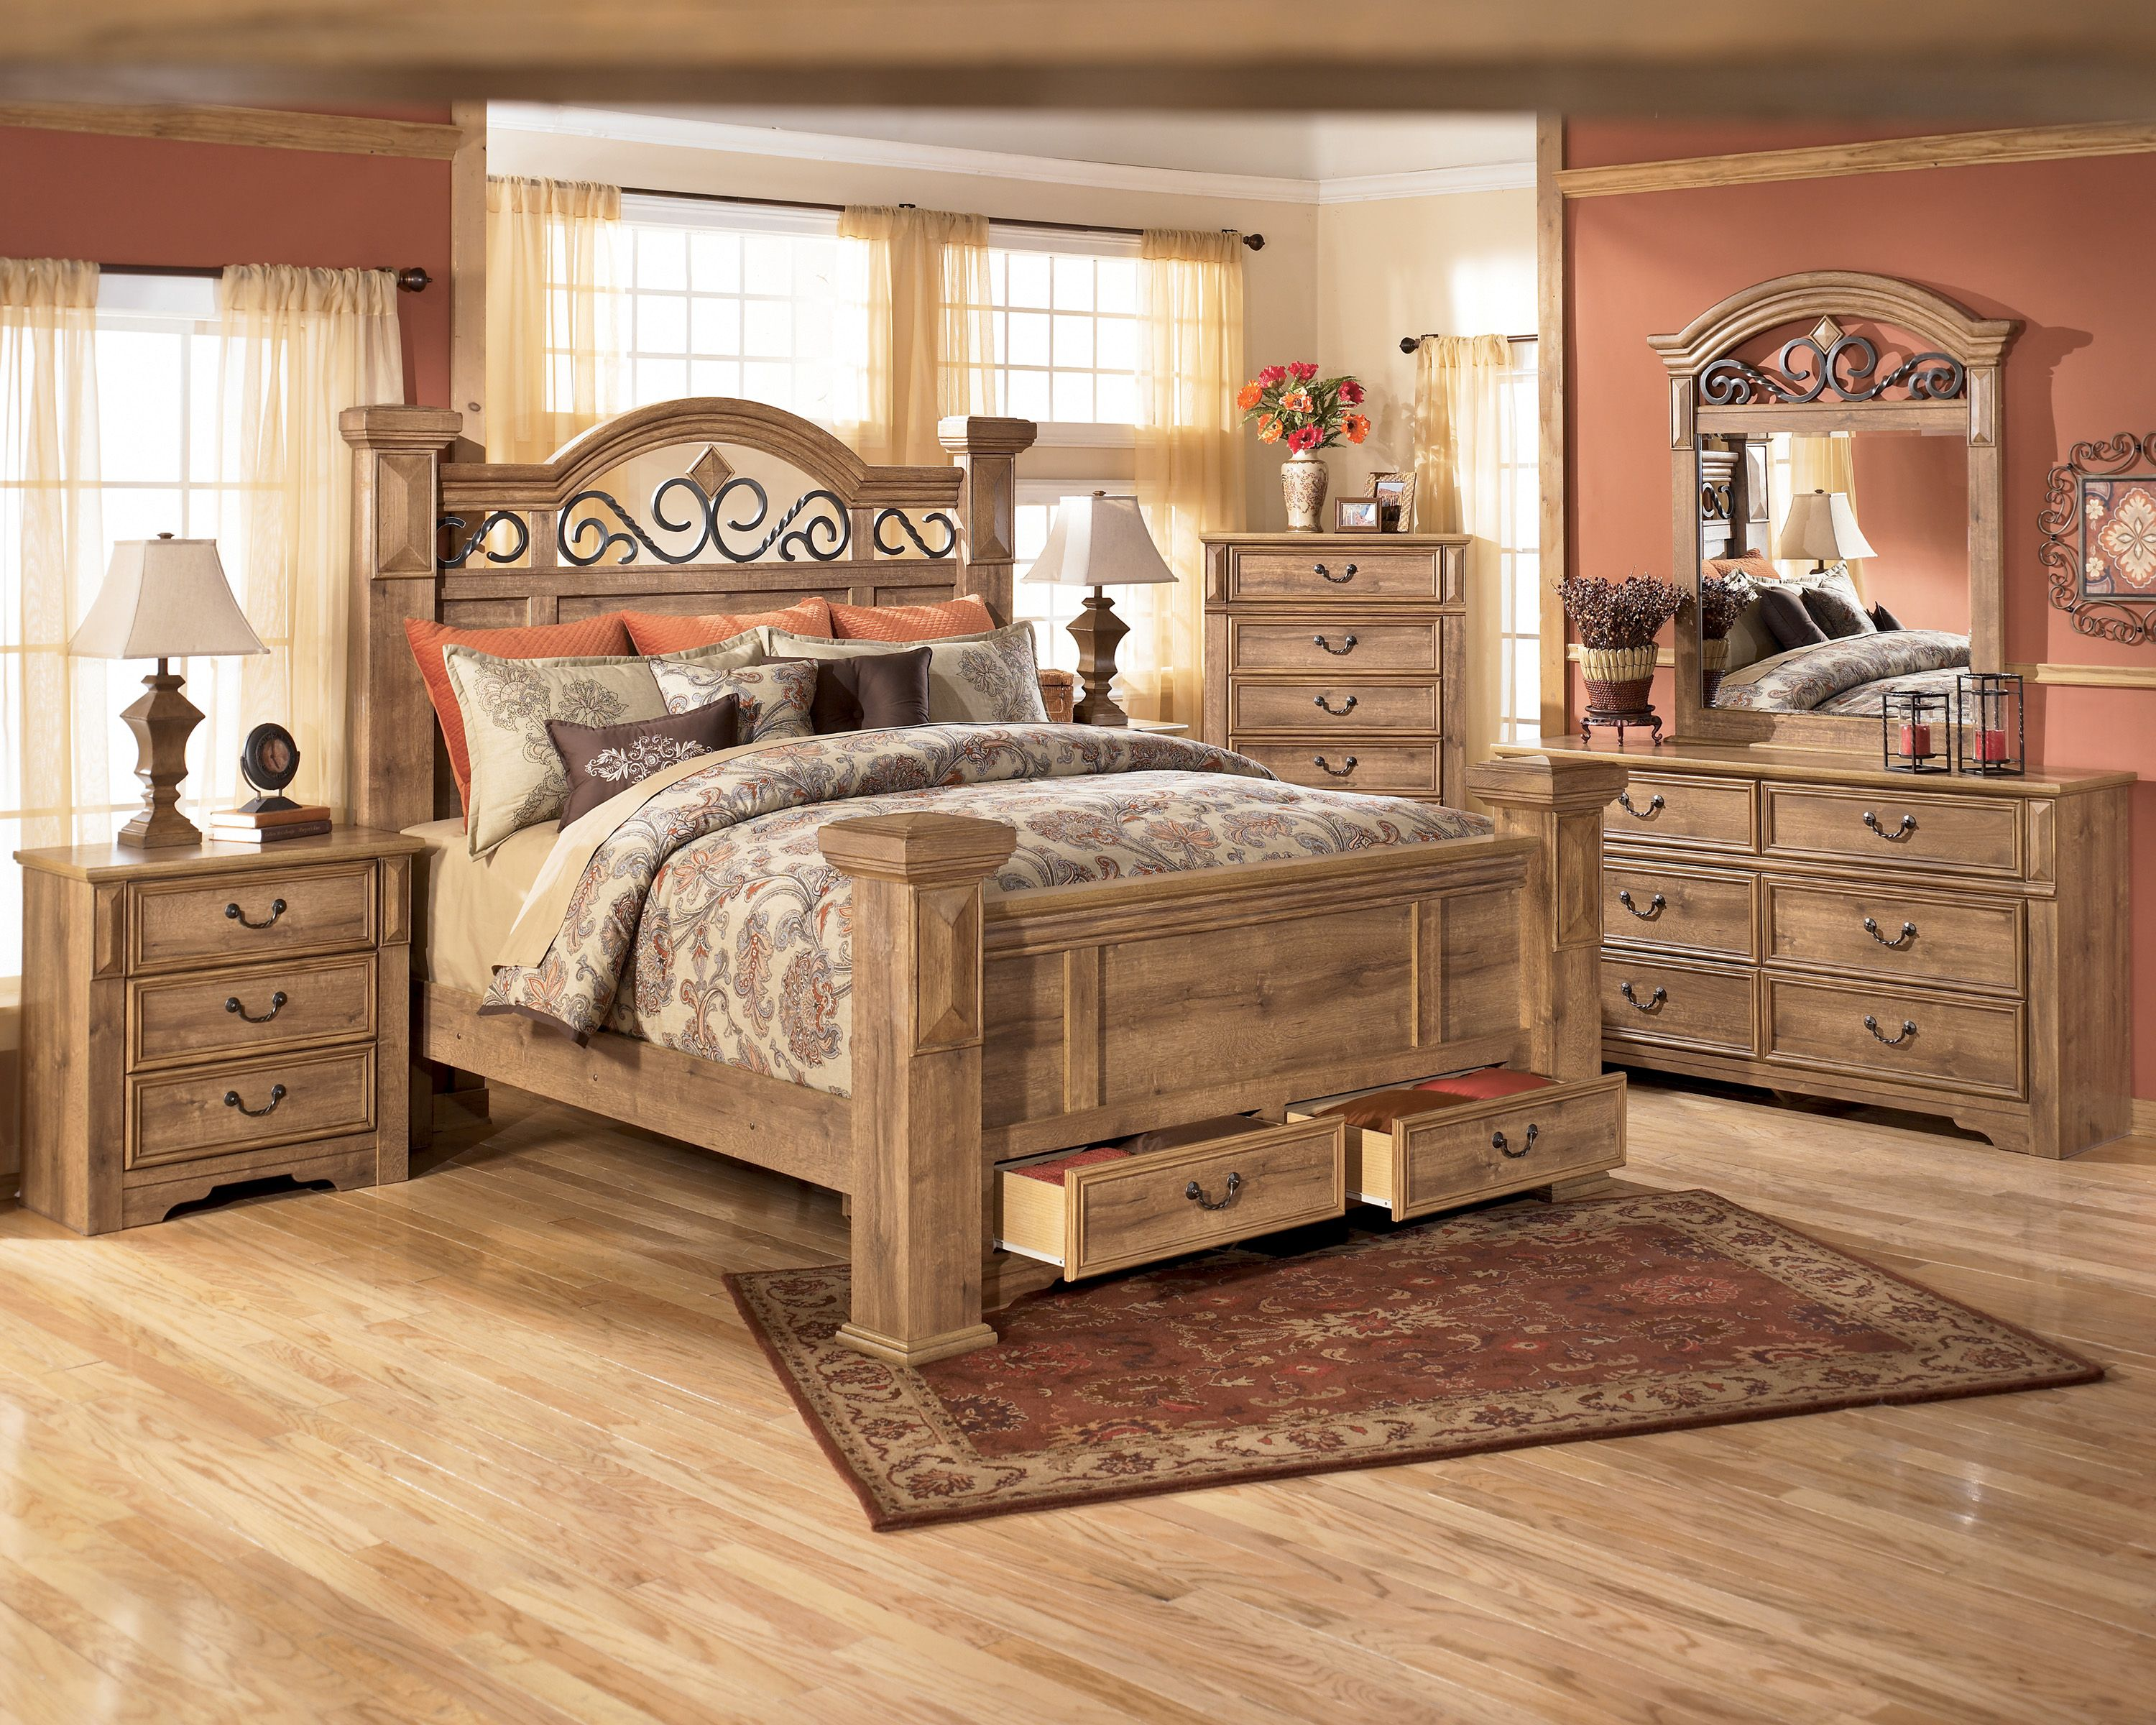 Bedroom Furniture Sets Plain Bedroom Best King Size Bed Set     bedroom furniture sets  plain bedroom best king size bed set rosalinda for  bedroom furniture sets